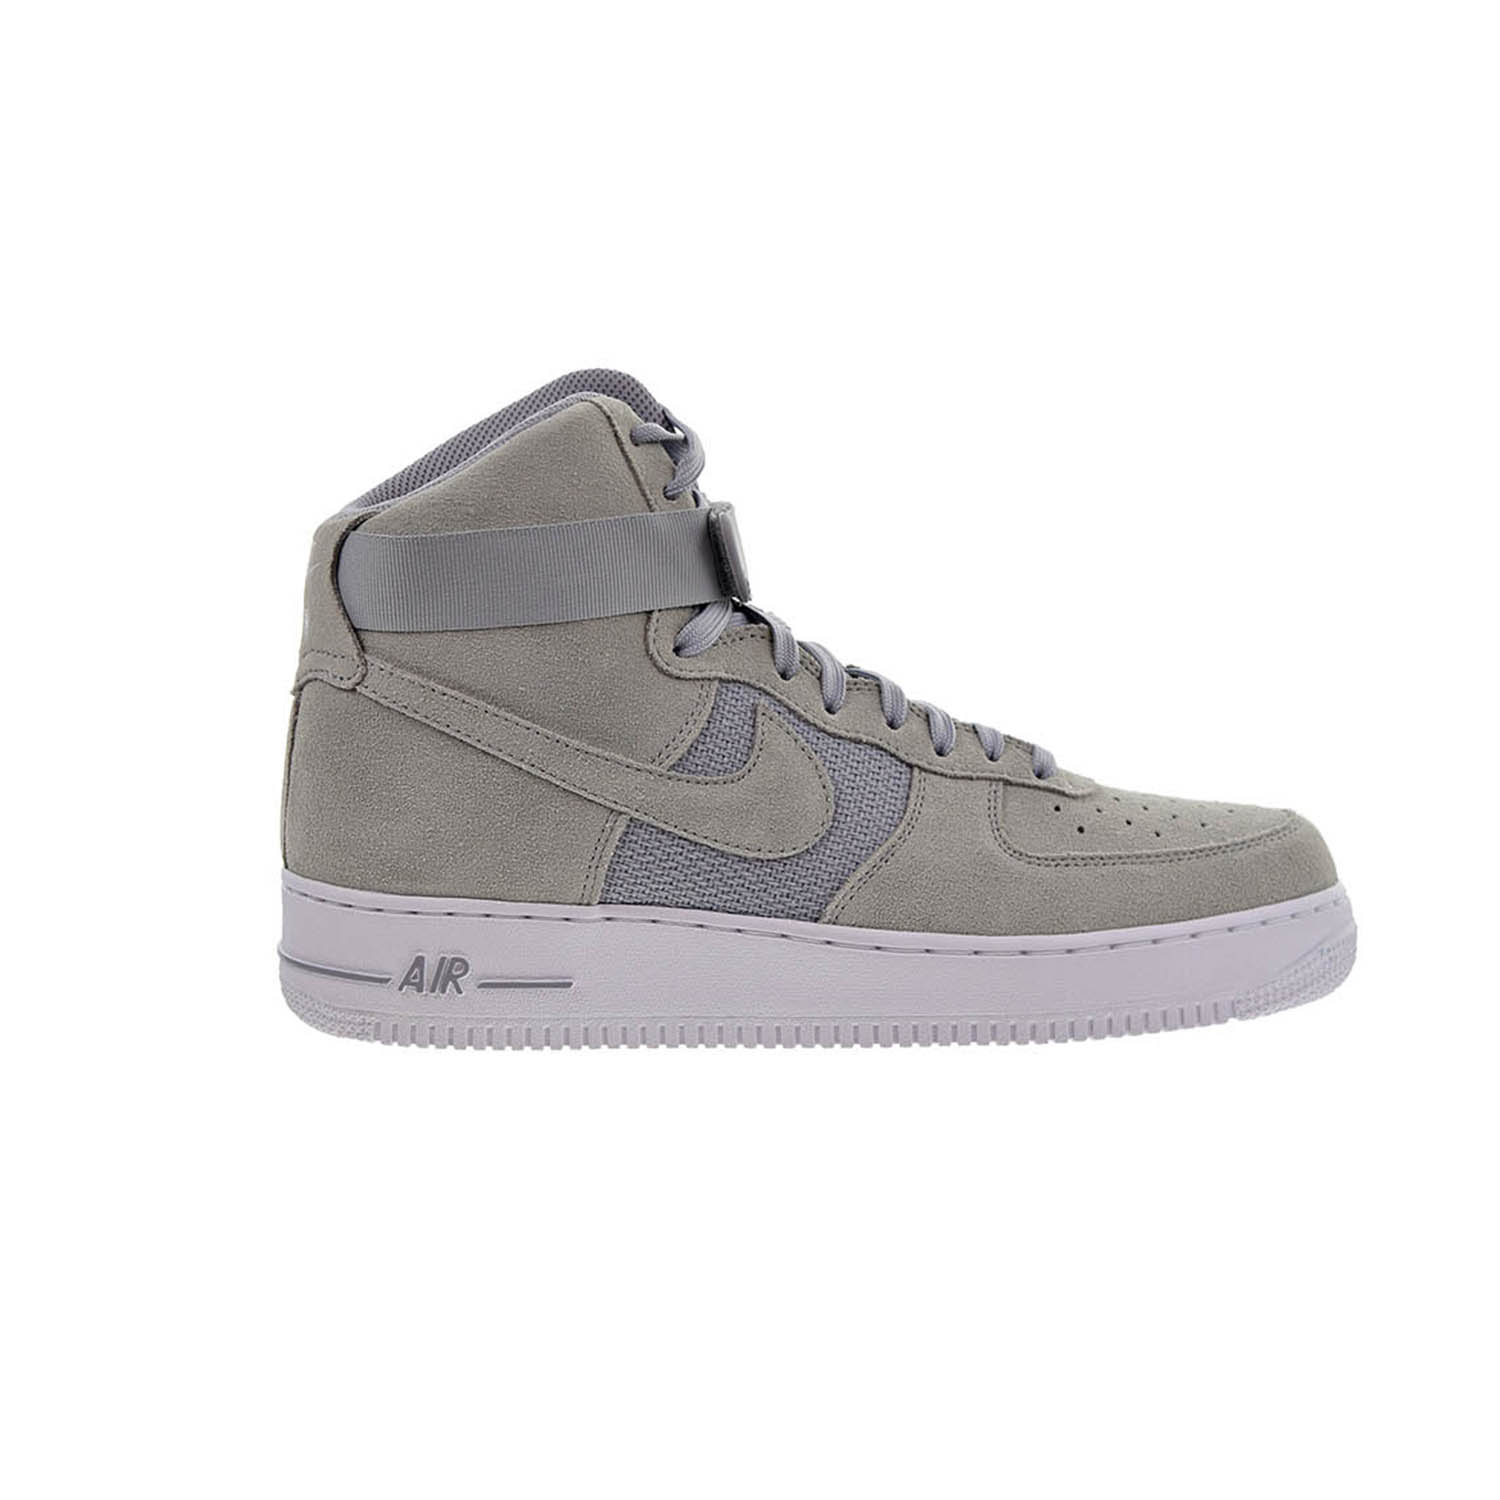 Nike Air Force 1 High 07 Men's Shoes Pure Platinum/White/...